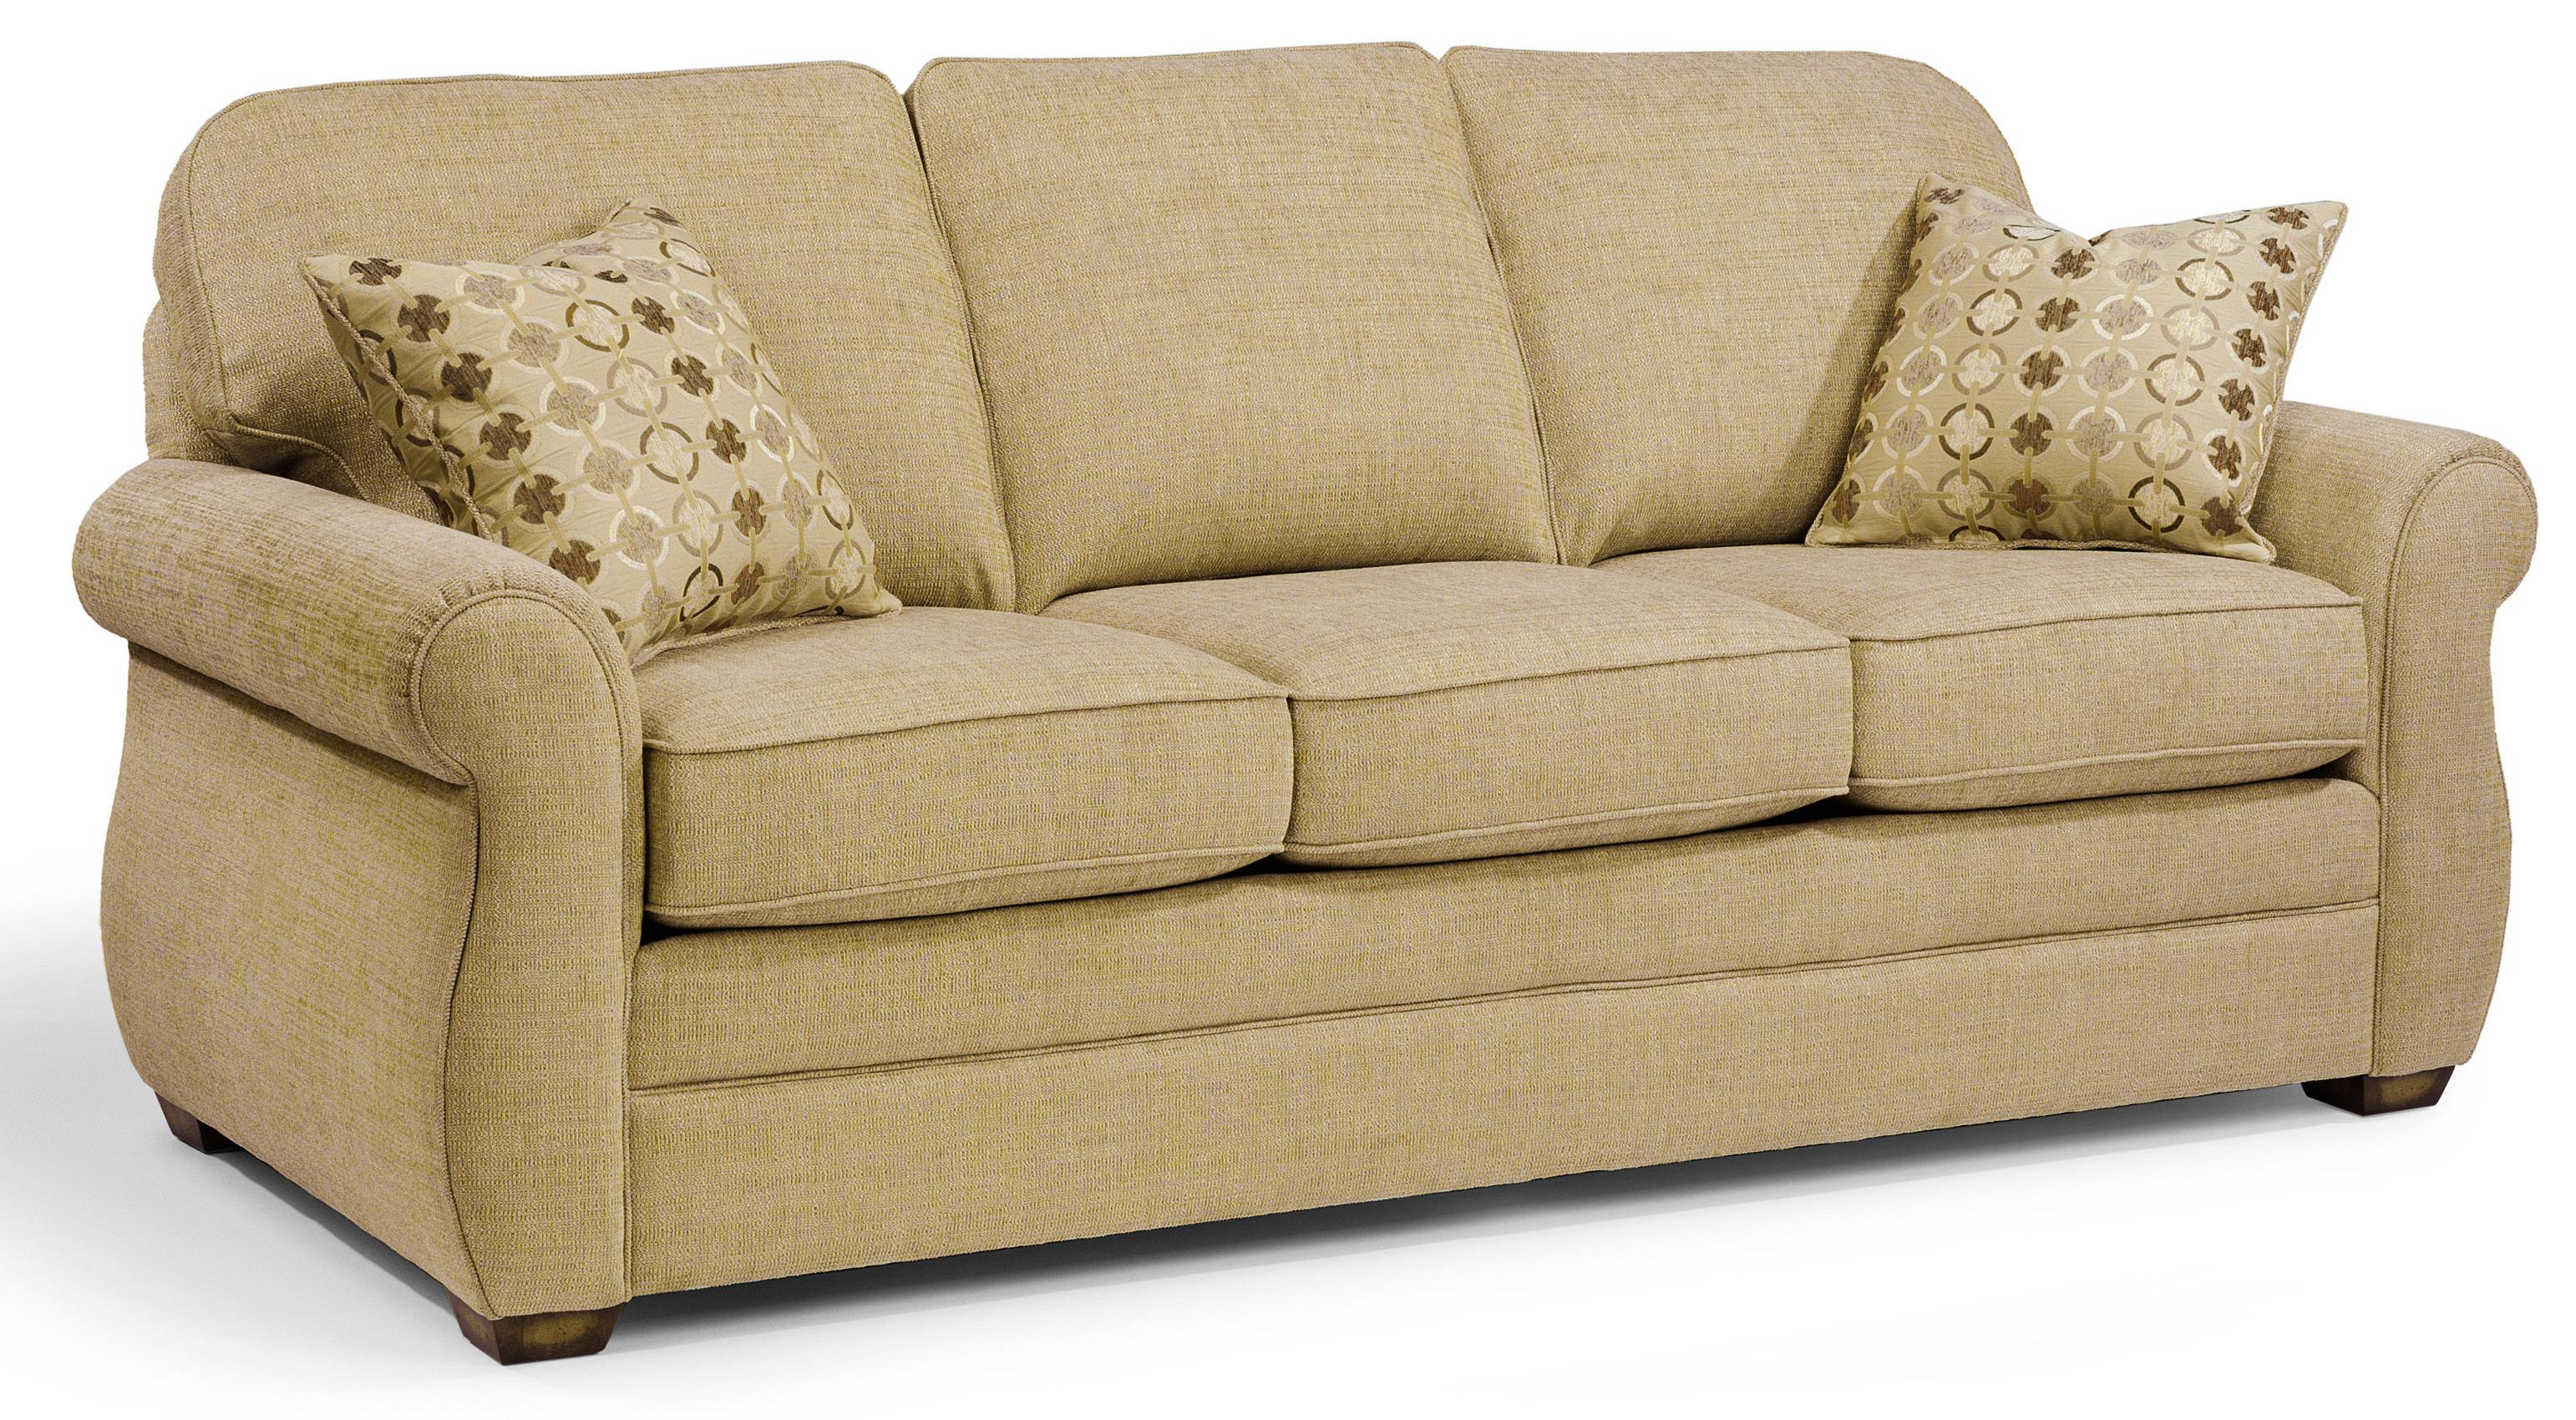 flexsteel sofas flexsteel whitney sofa - item number: 5643-31 SPWDOAX